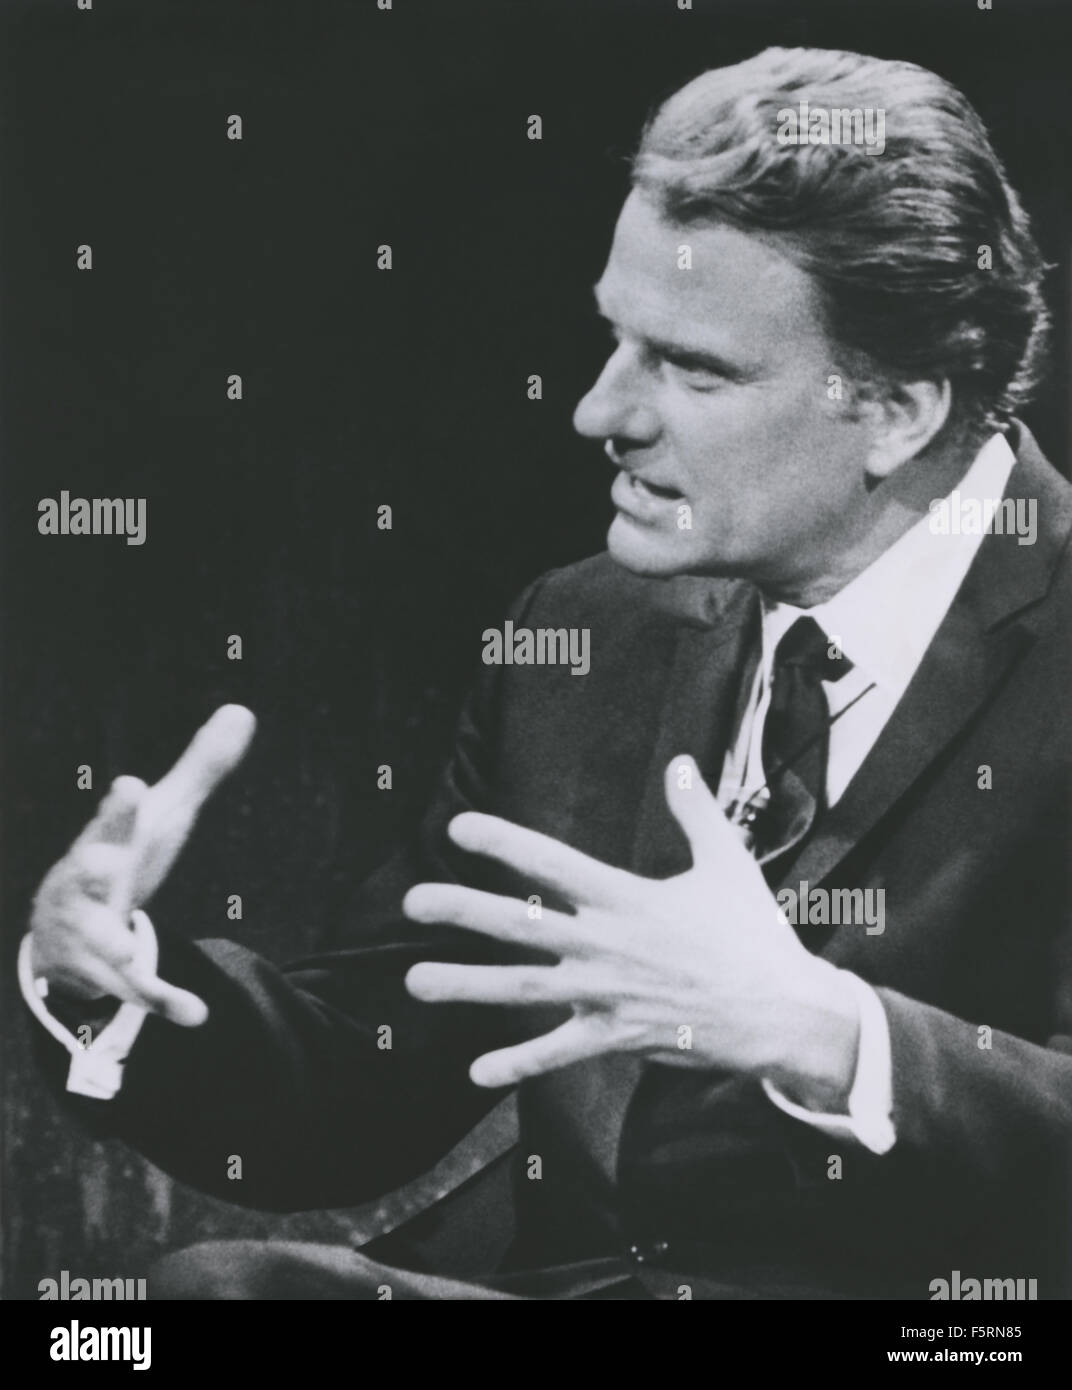 Billy Graham, international Christian evangelist, speaking on ABC-TV's 'Issues and Answers' program - Stock Image